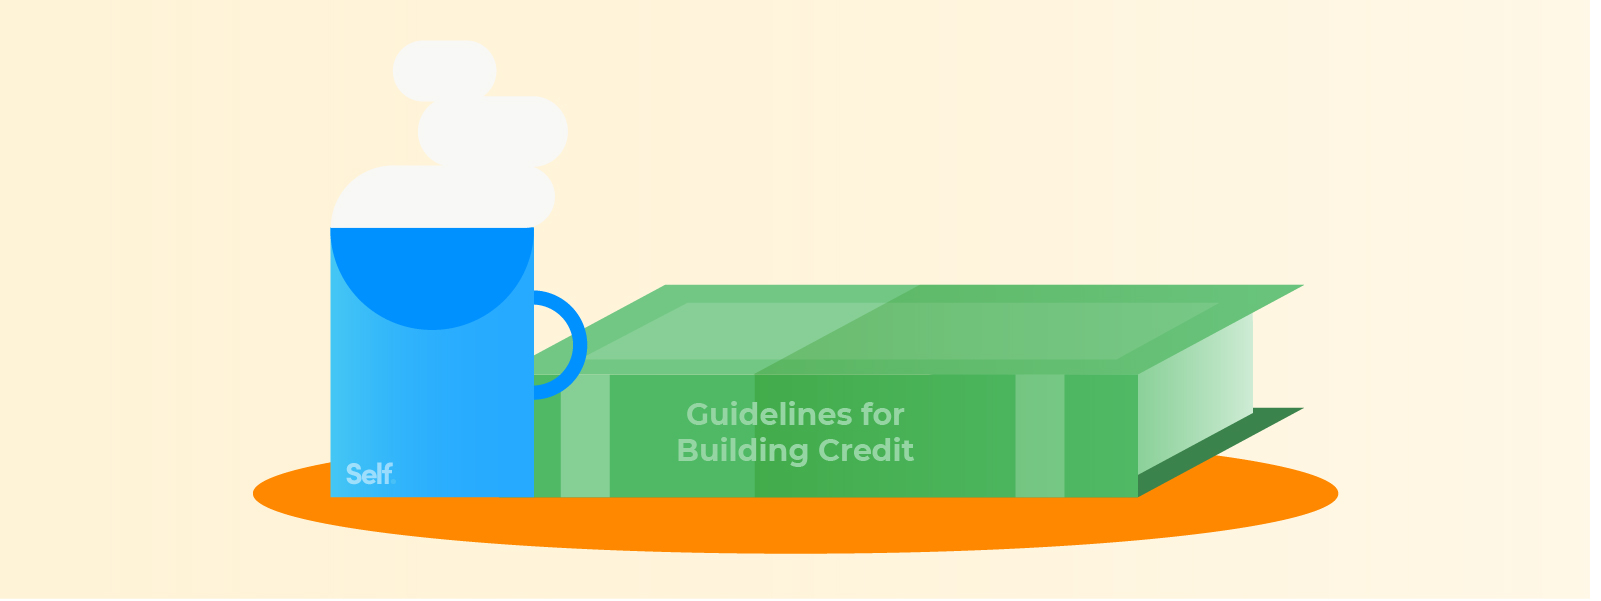 Guidelines for building credit